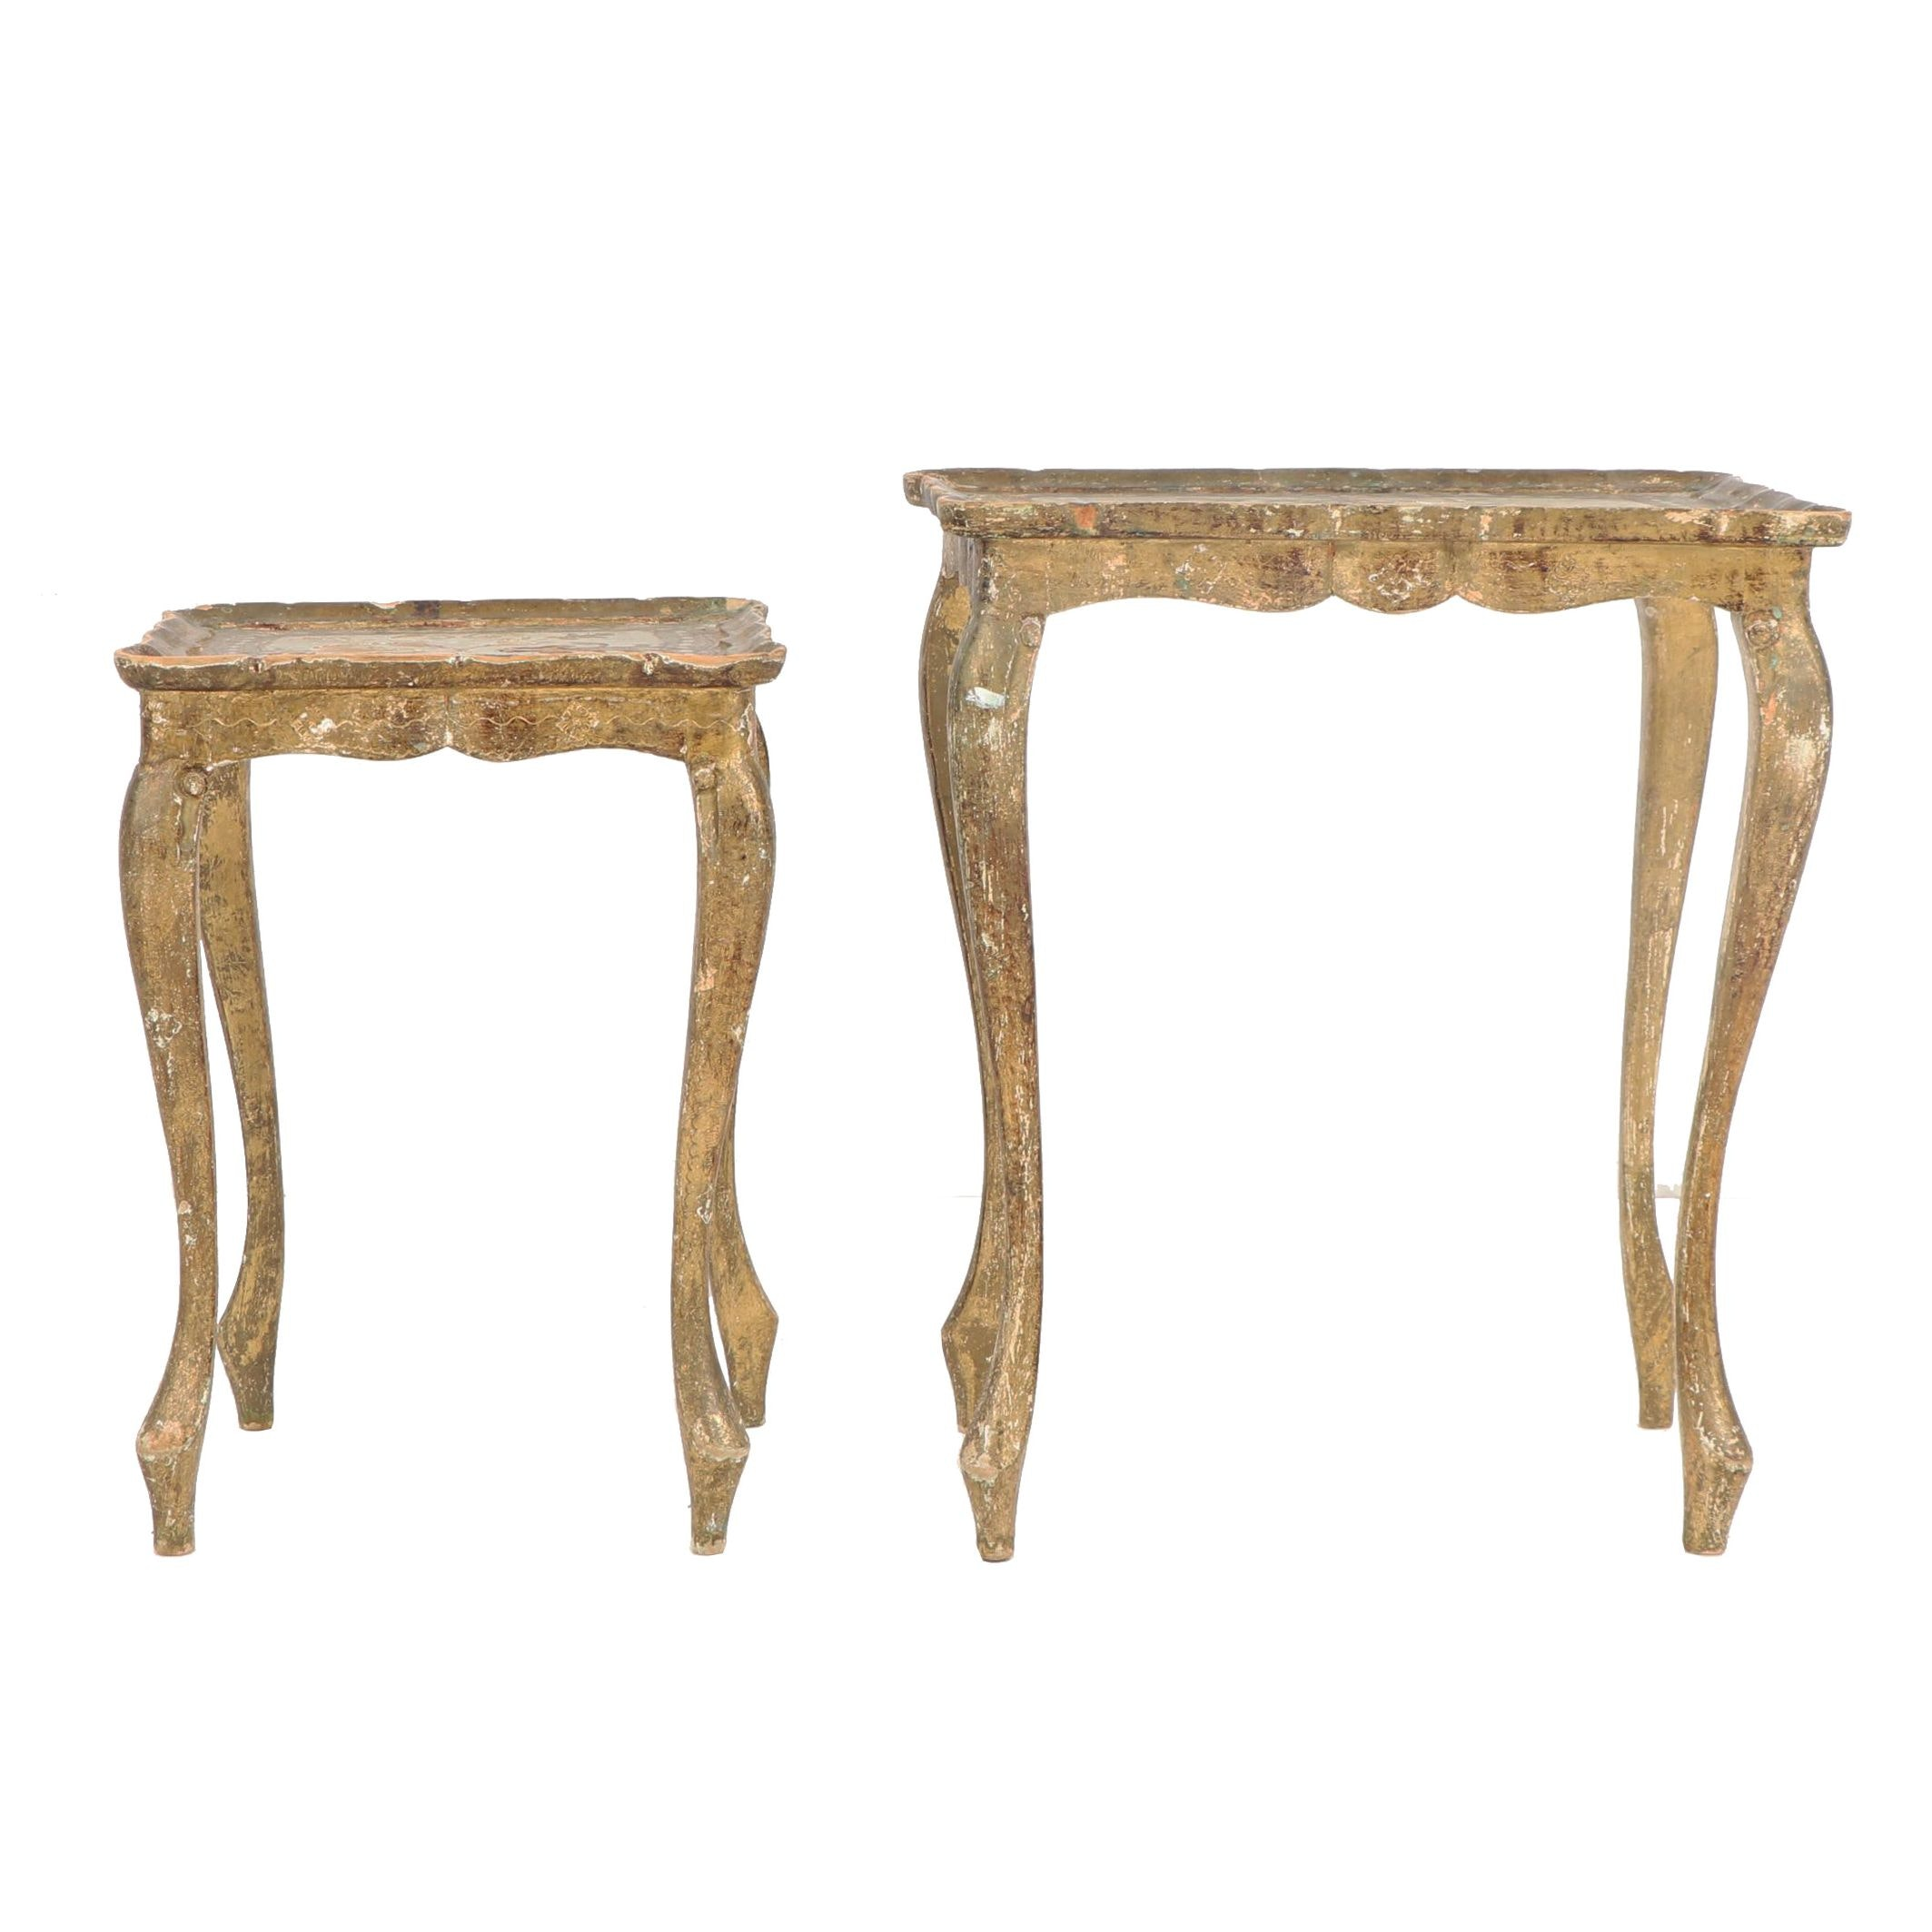 Florentine Style Painted Wooden Nesting Table Pair, 19th/ 20th Century